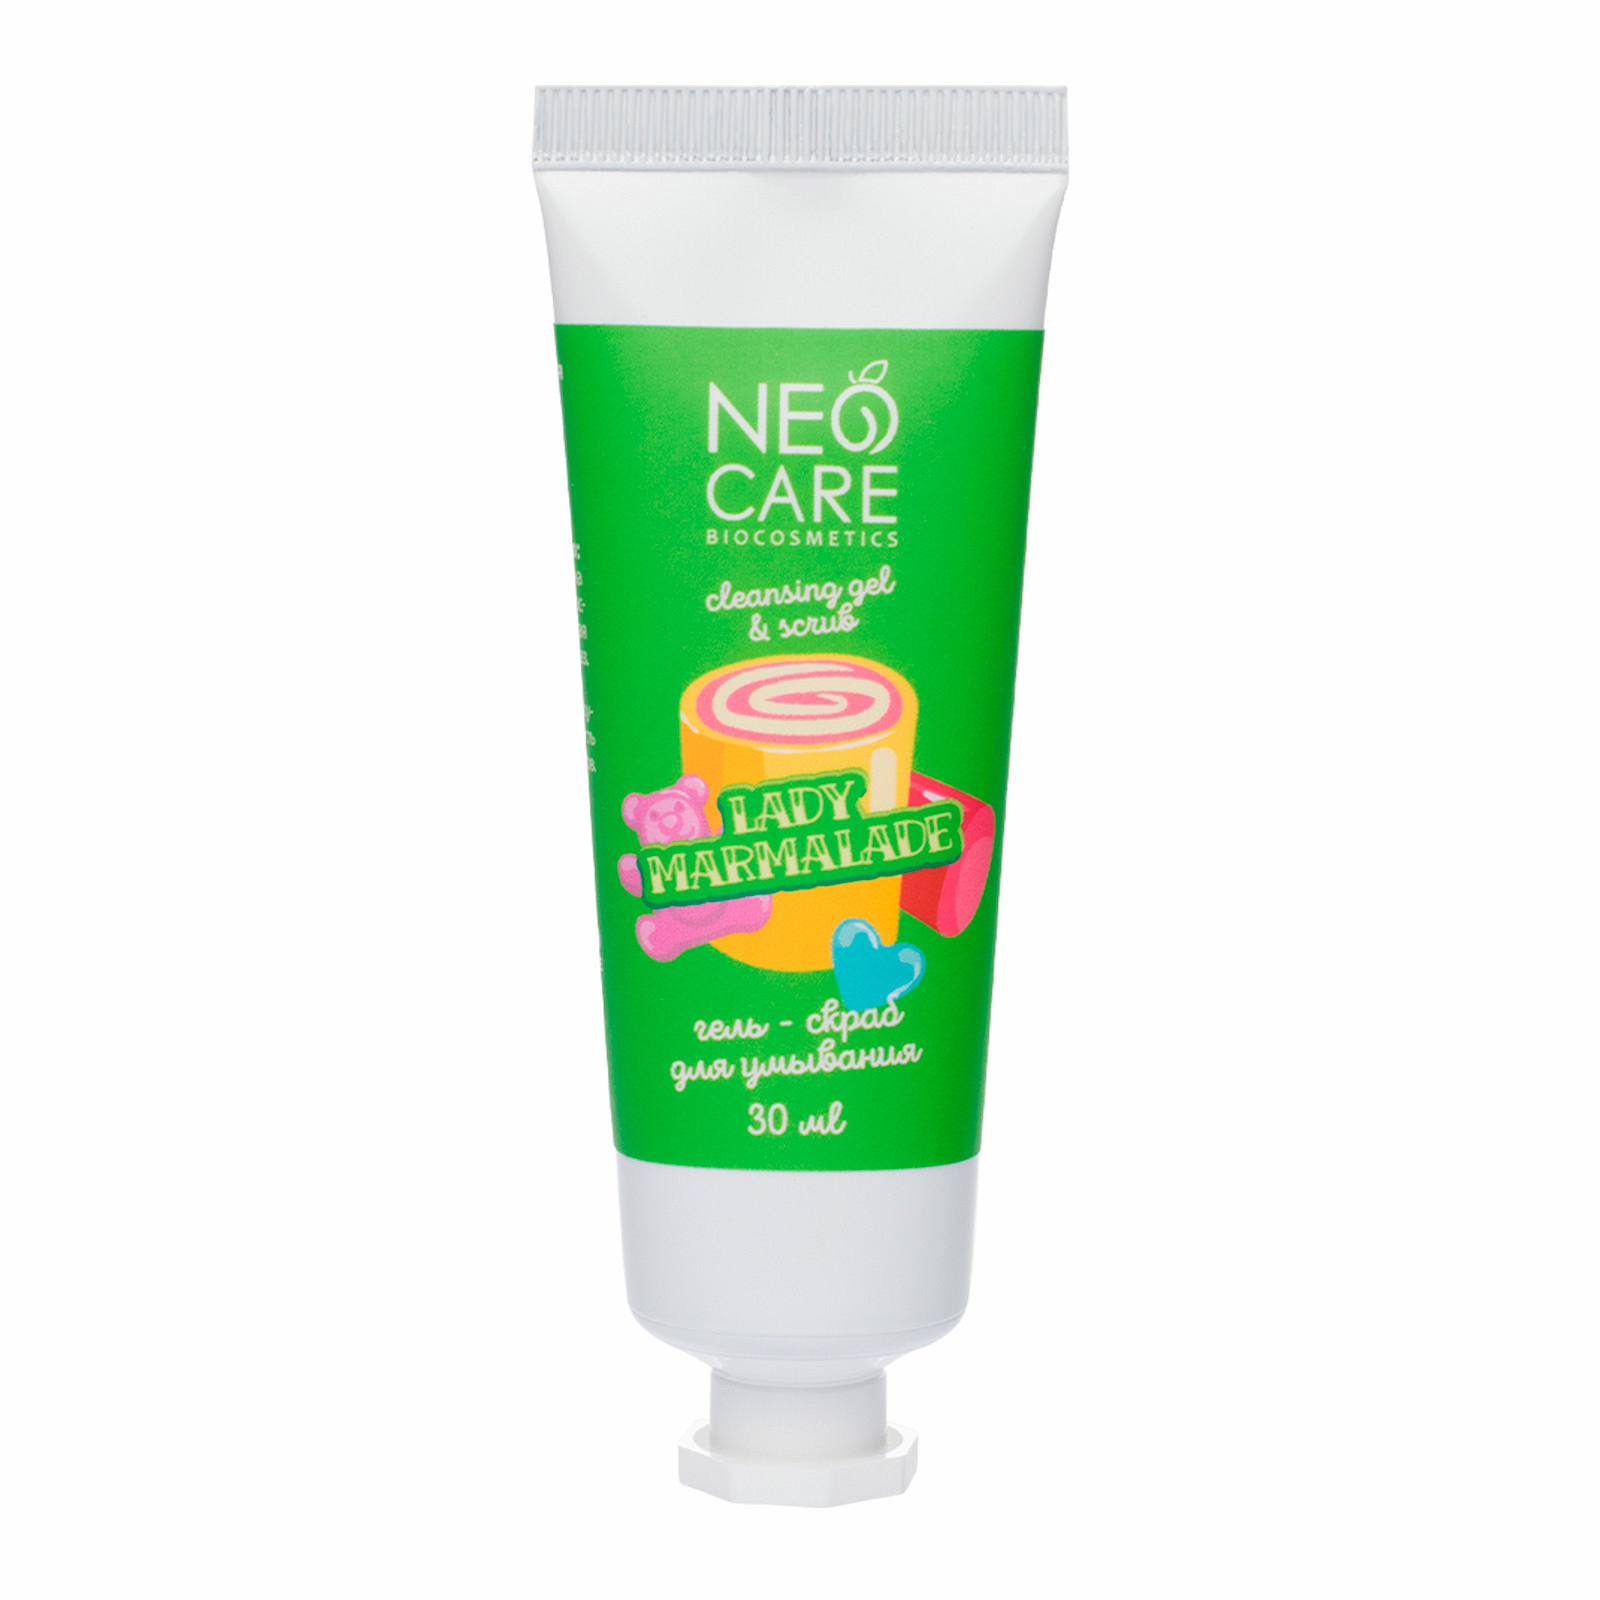 Gel-scrub for washing Lady marmalade Neo Care, 30 ml